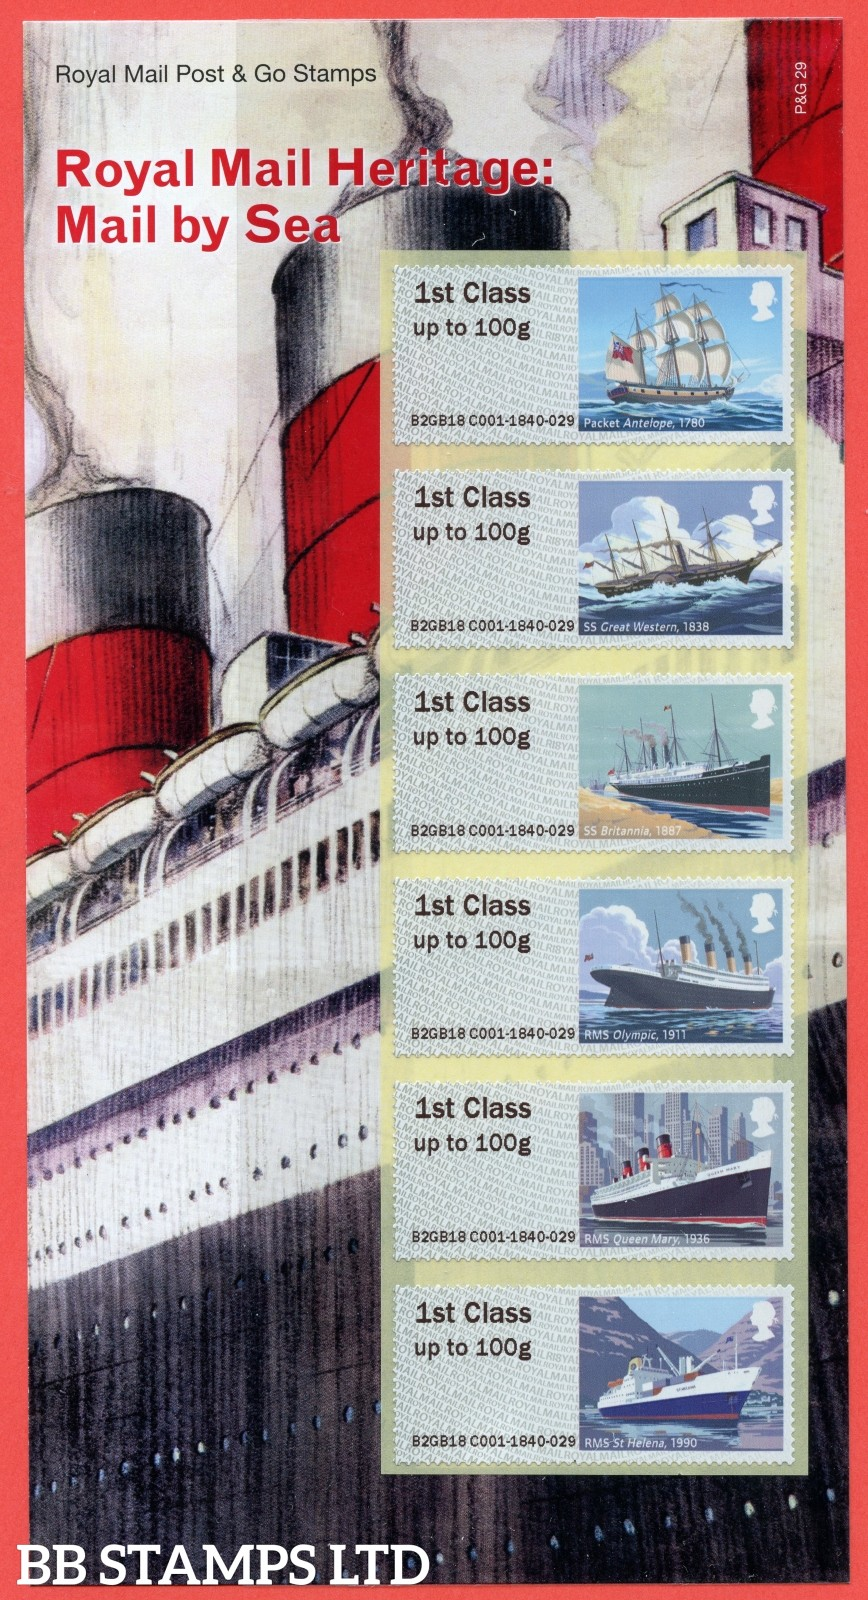 2018 Post & Go: Royal Mail Heritage - Mail by Sea